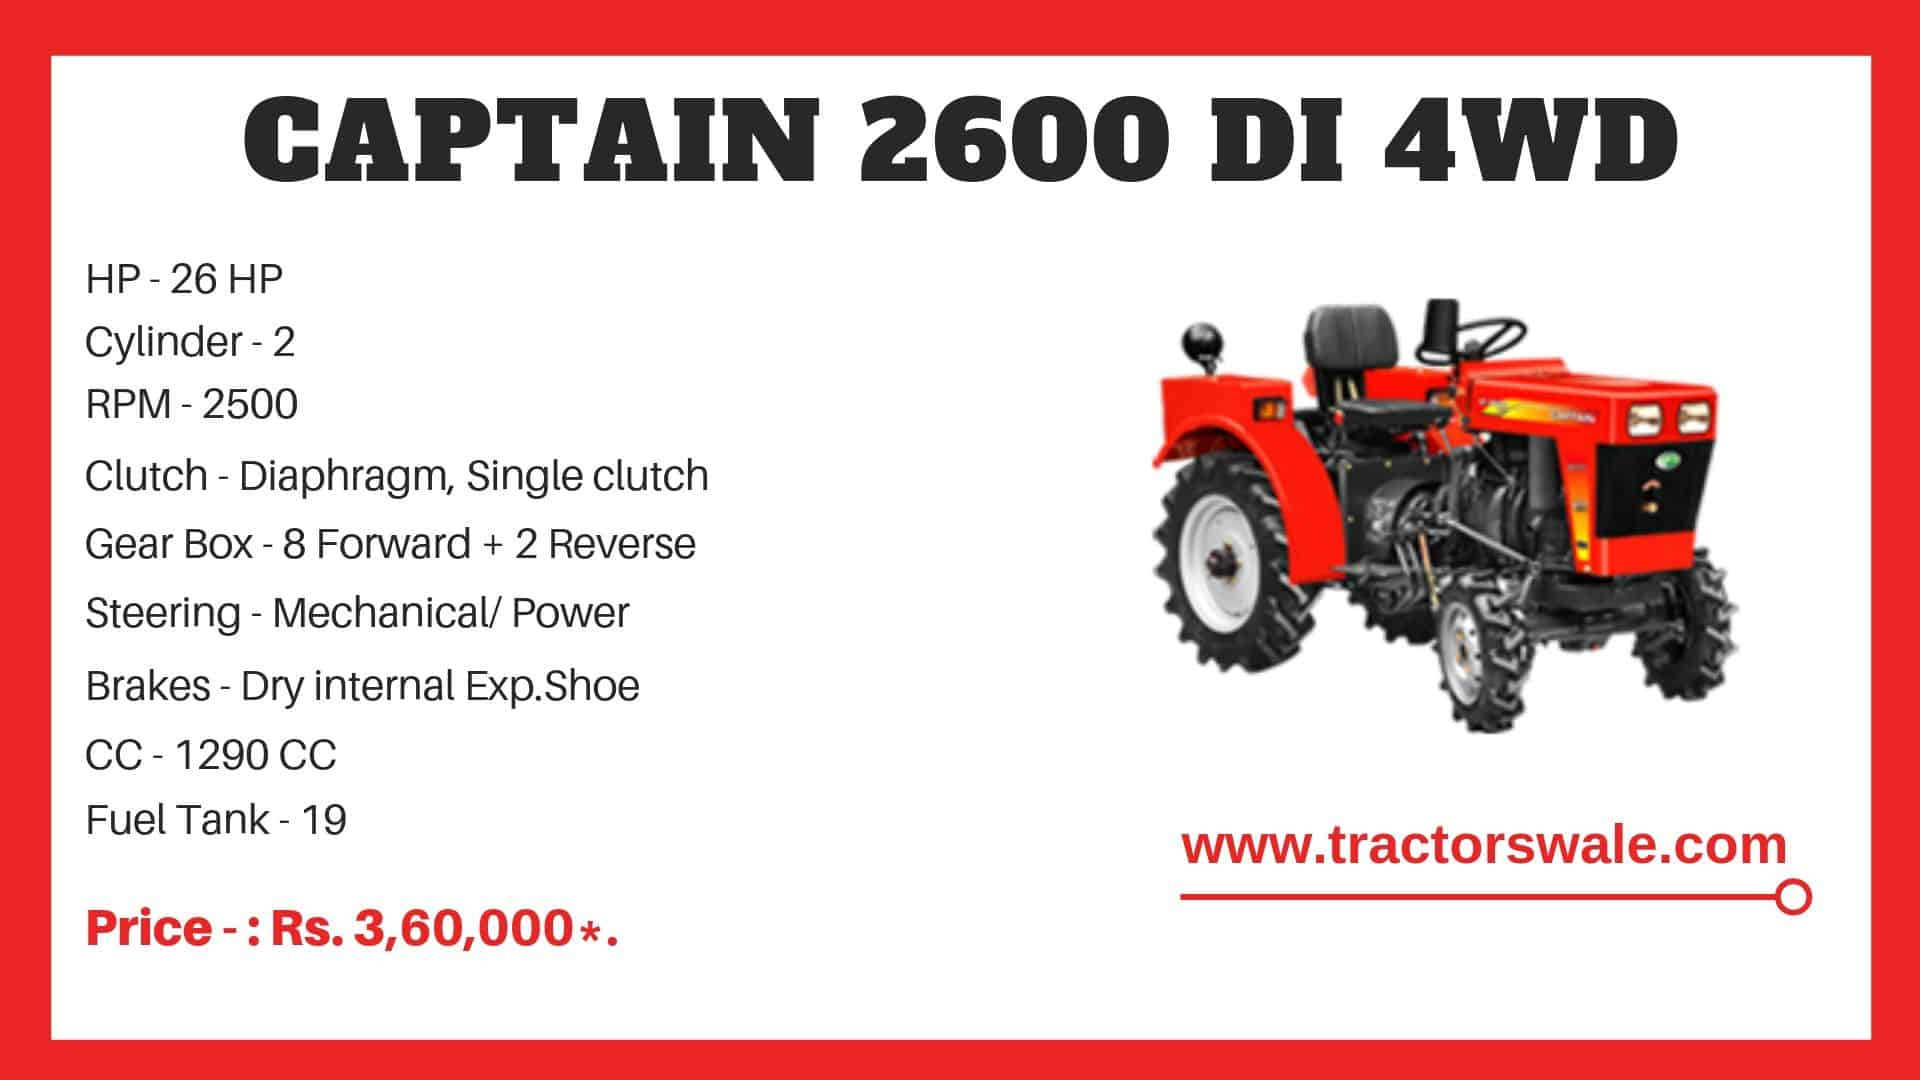 Specification of Captain 2600 DI 4WD